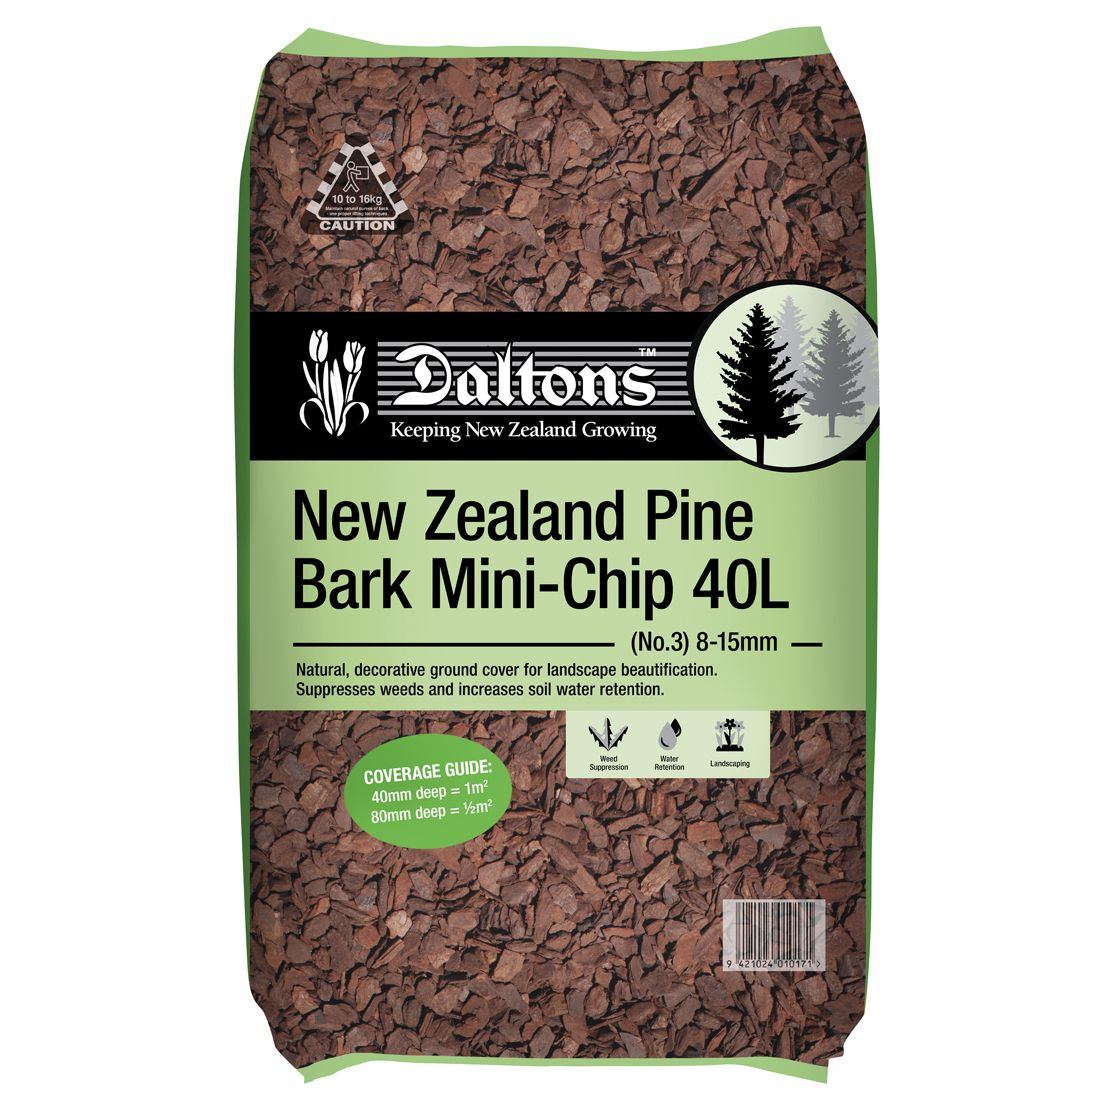 NZ Pine Bark Mini Chip 40L Bag